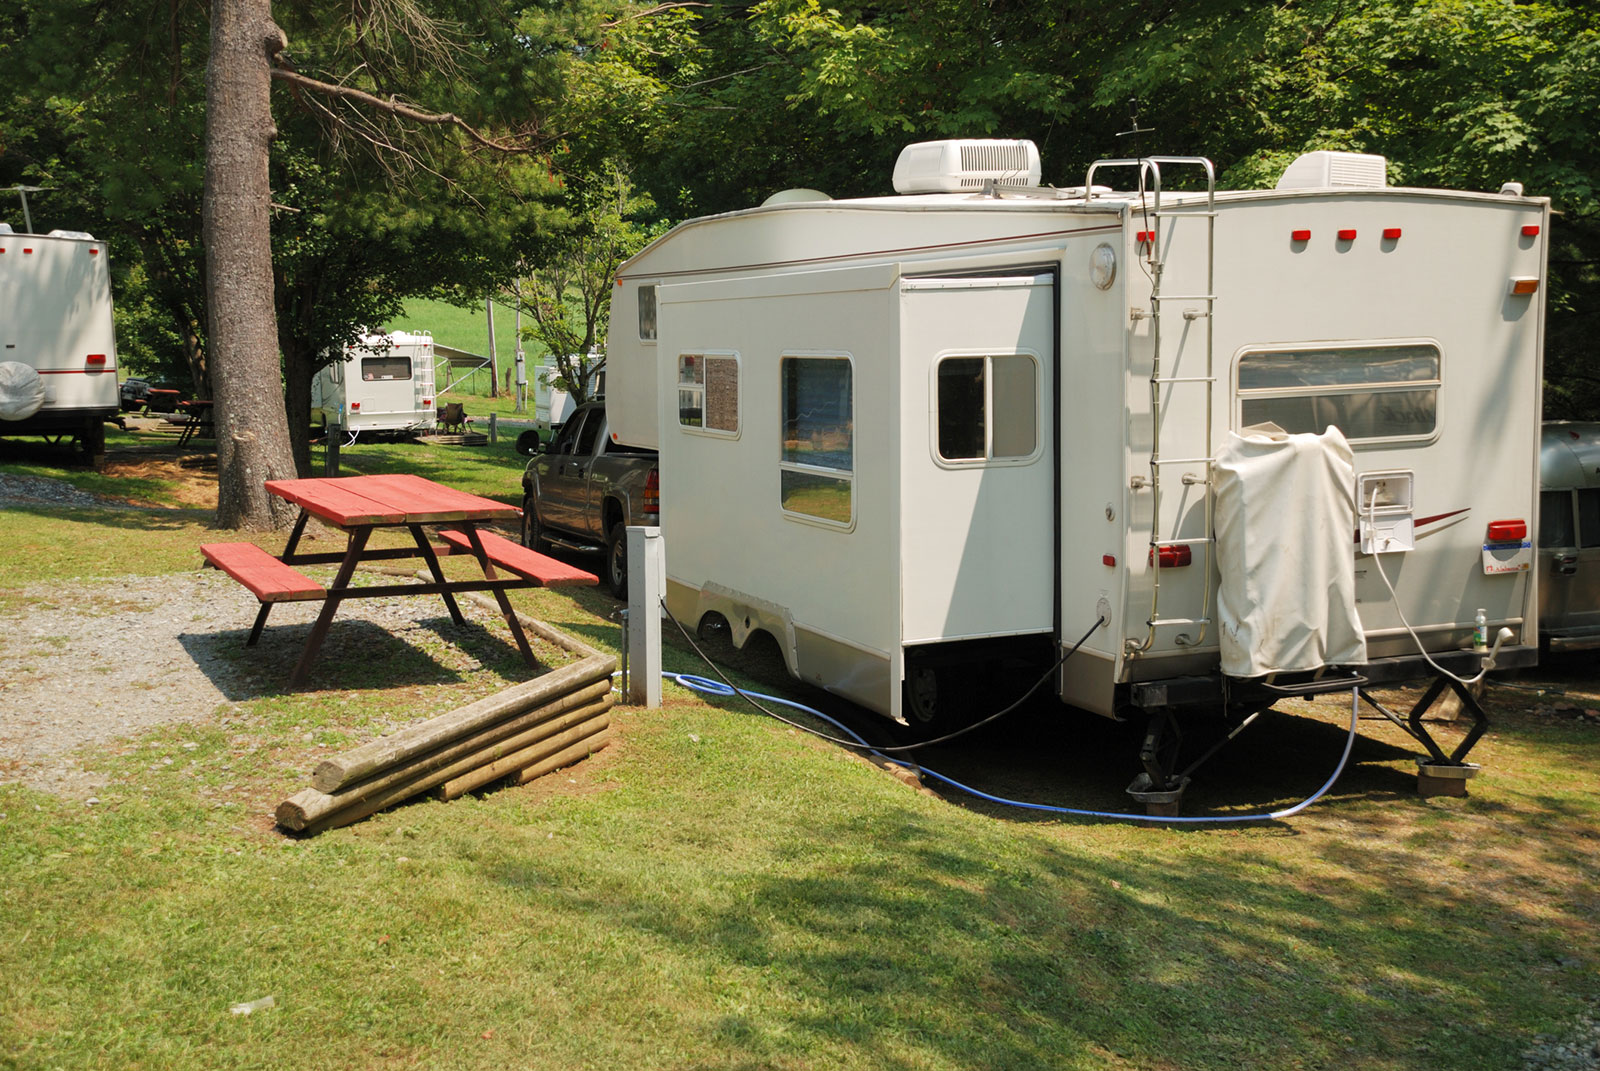 Camping-with-RV.jpg